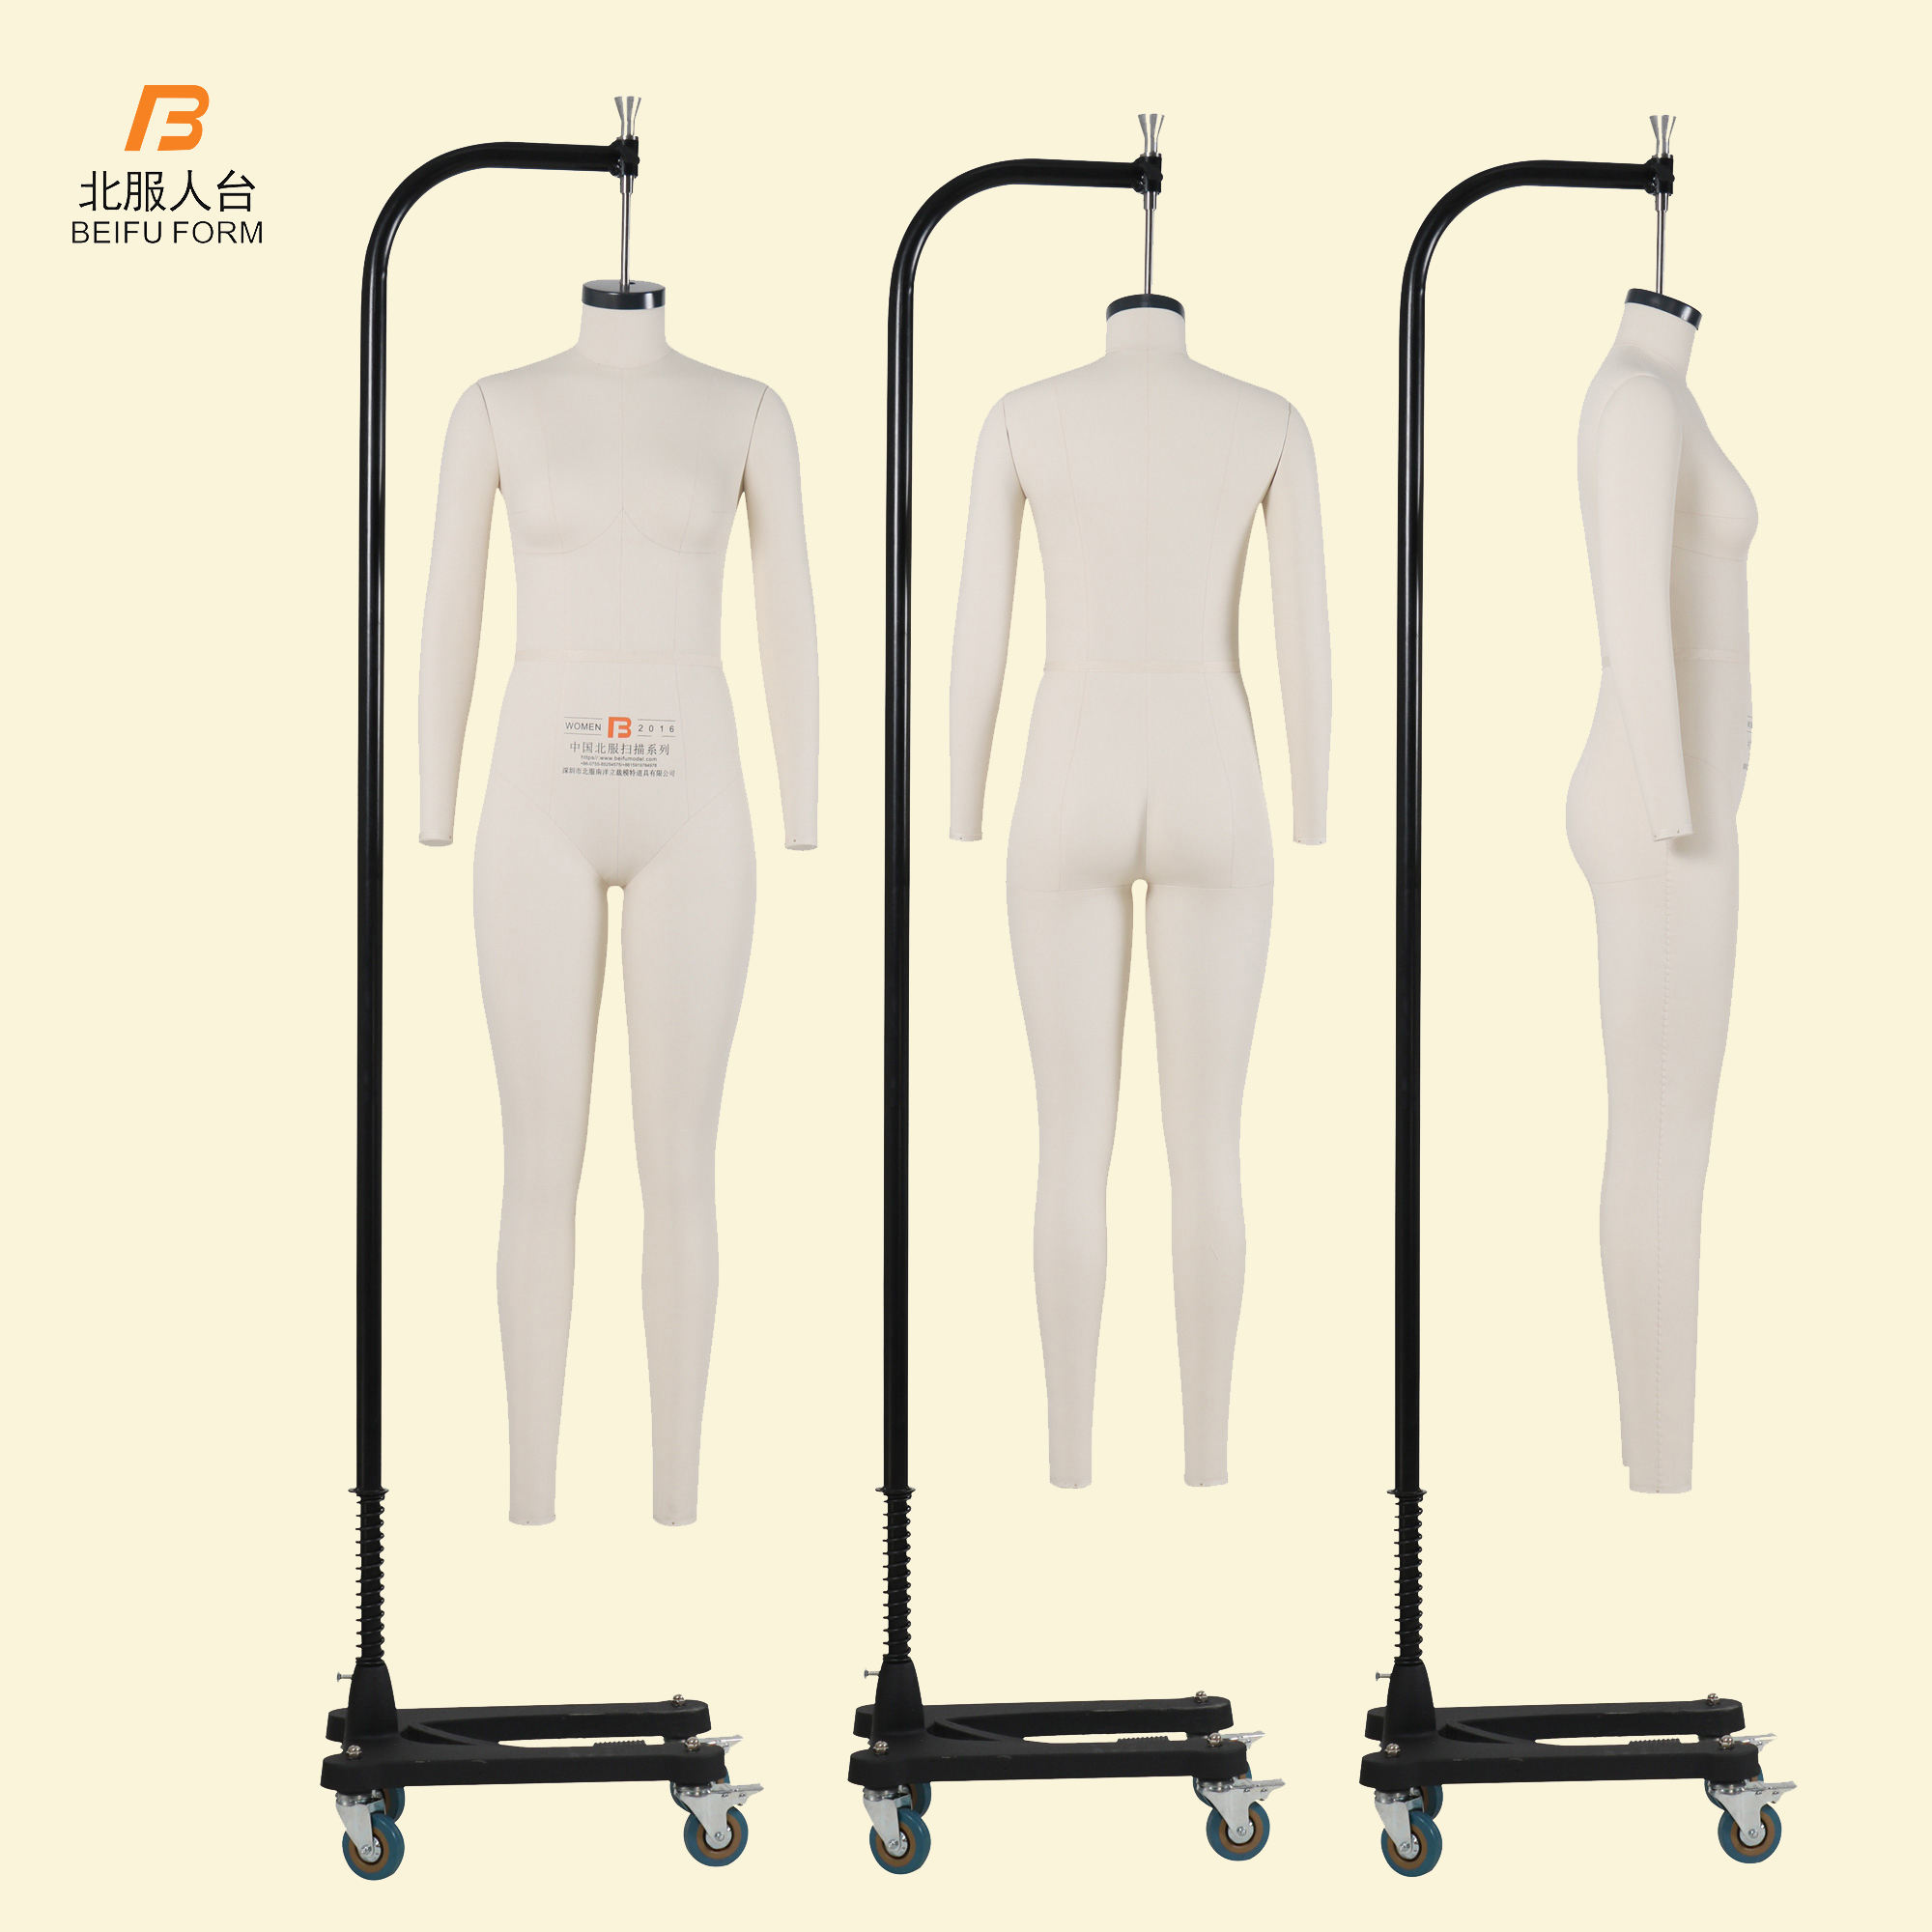 BEIFU FORM Female Full Body Mannequin of Collapsible Shoulders Dress Form for Garment Tailors Draping Model Cheap on Sale